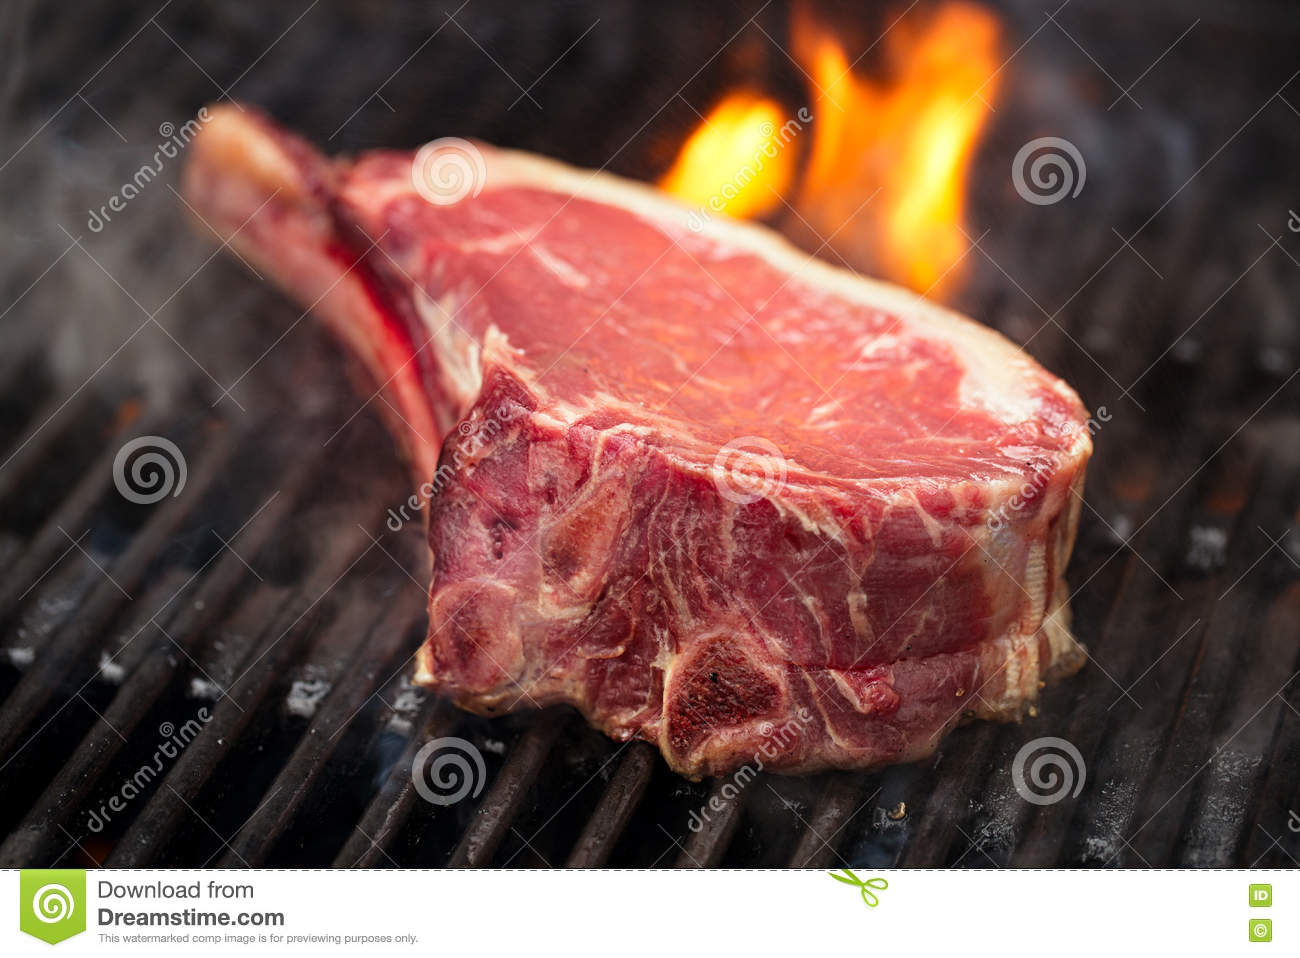 Food meat - beef steak on bbq barbecue grill with flame